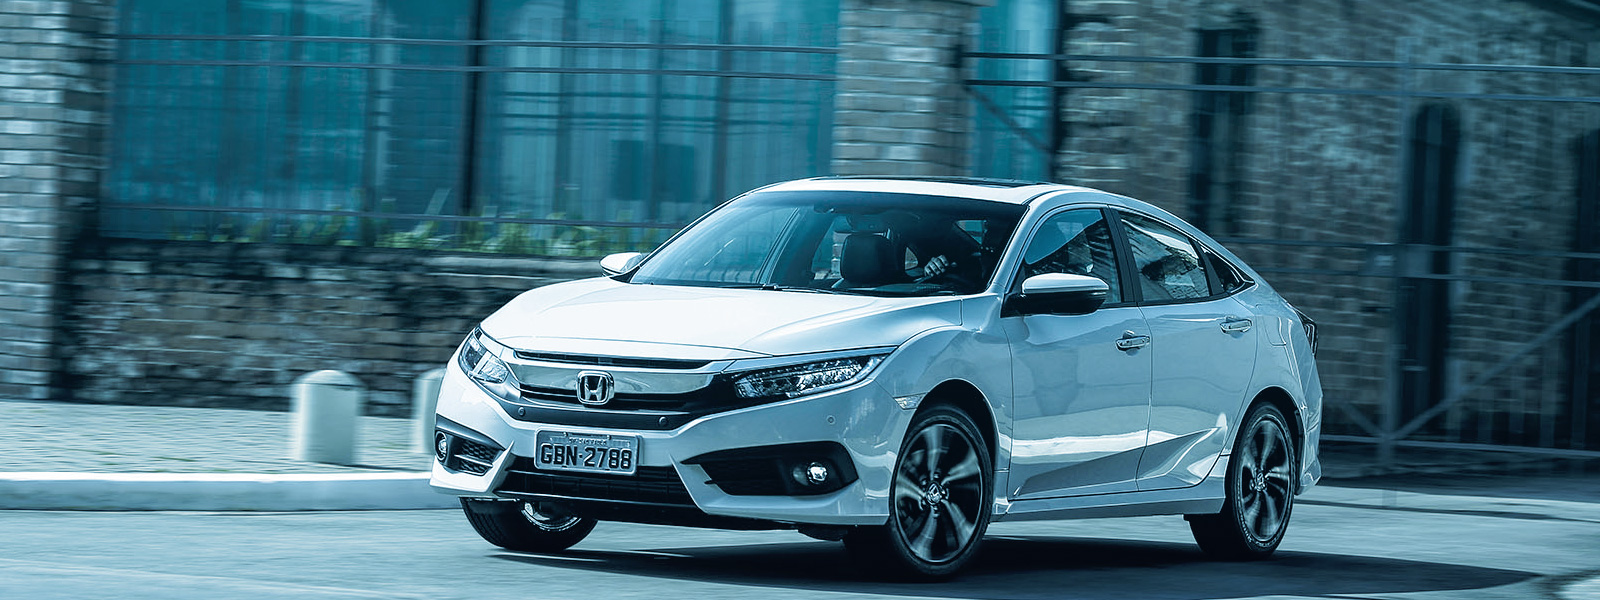 2017-blog-ceabs-honda-civic-eleito-carro